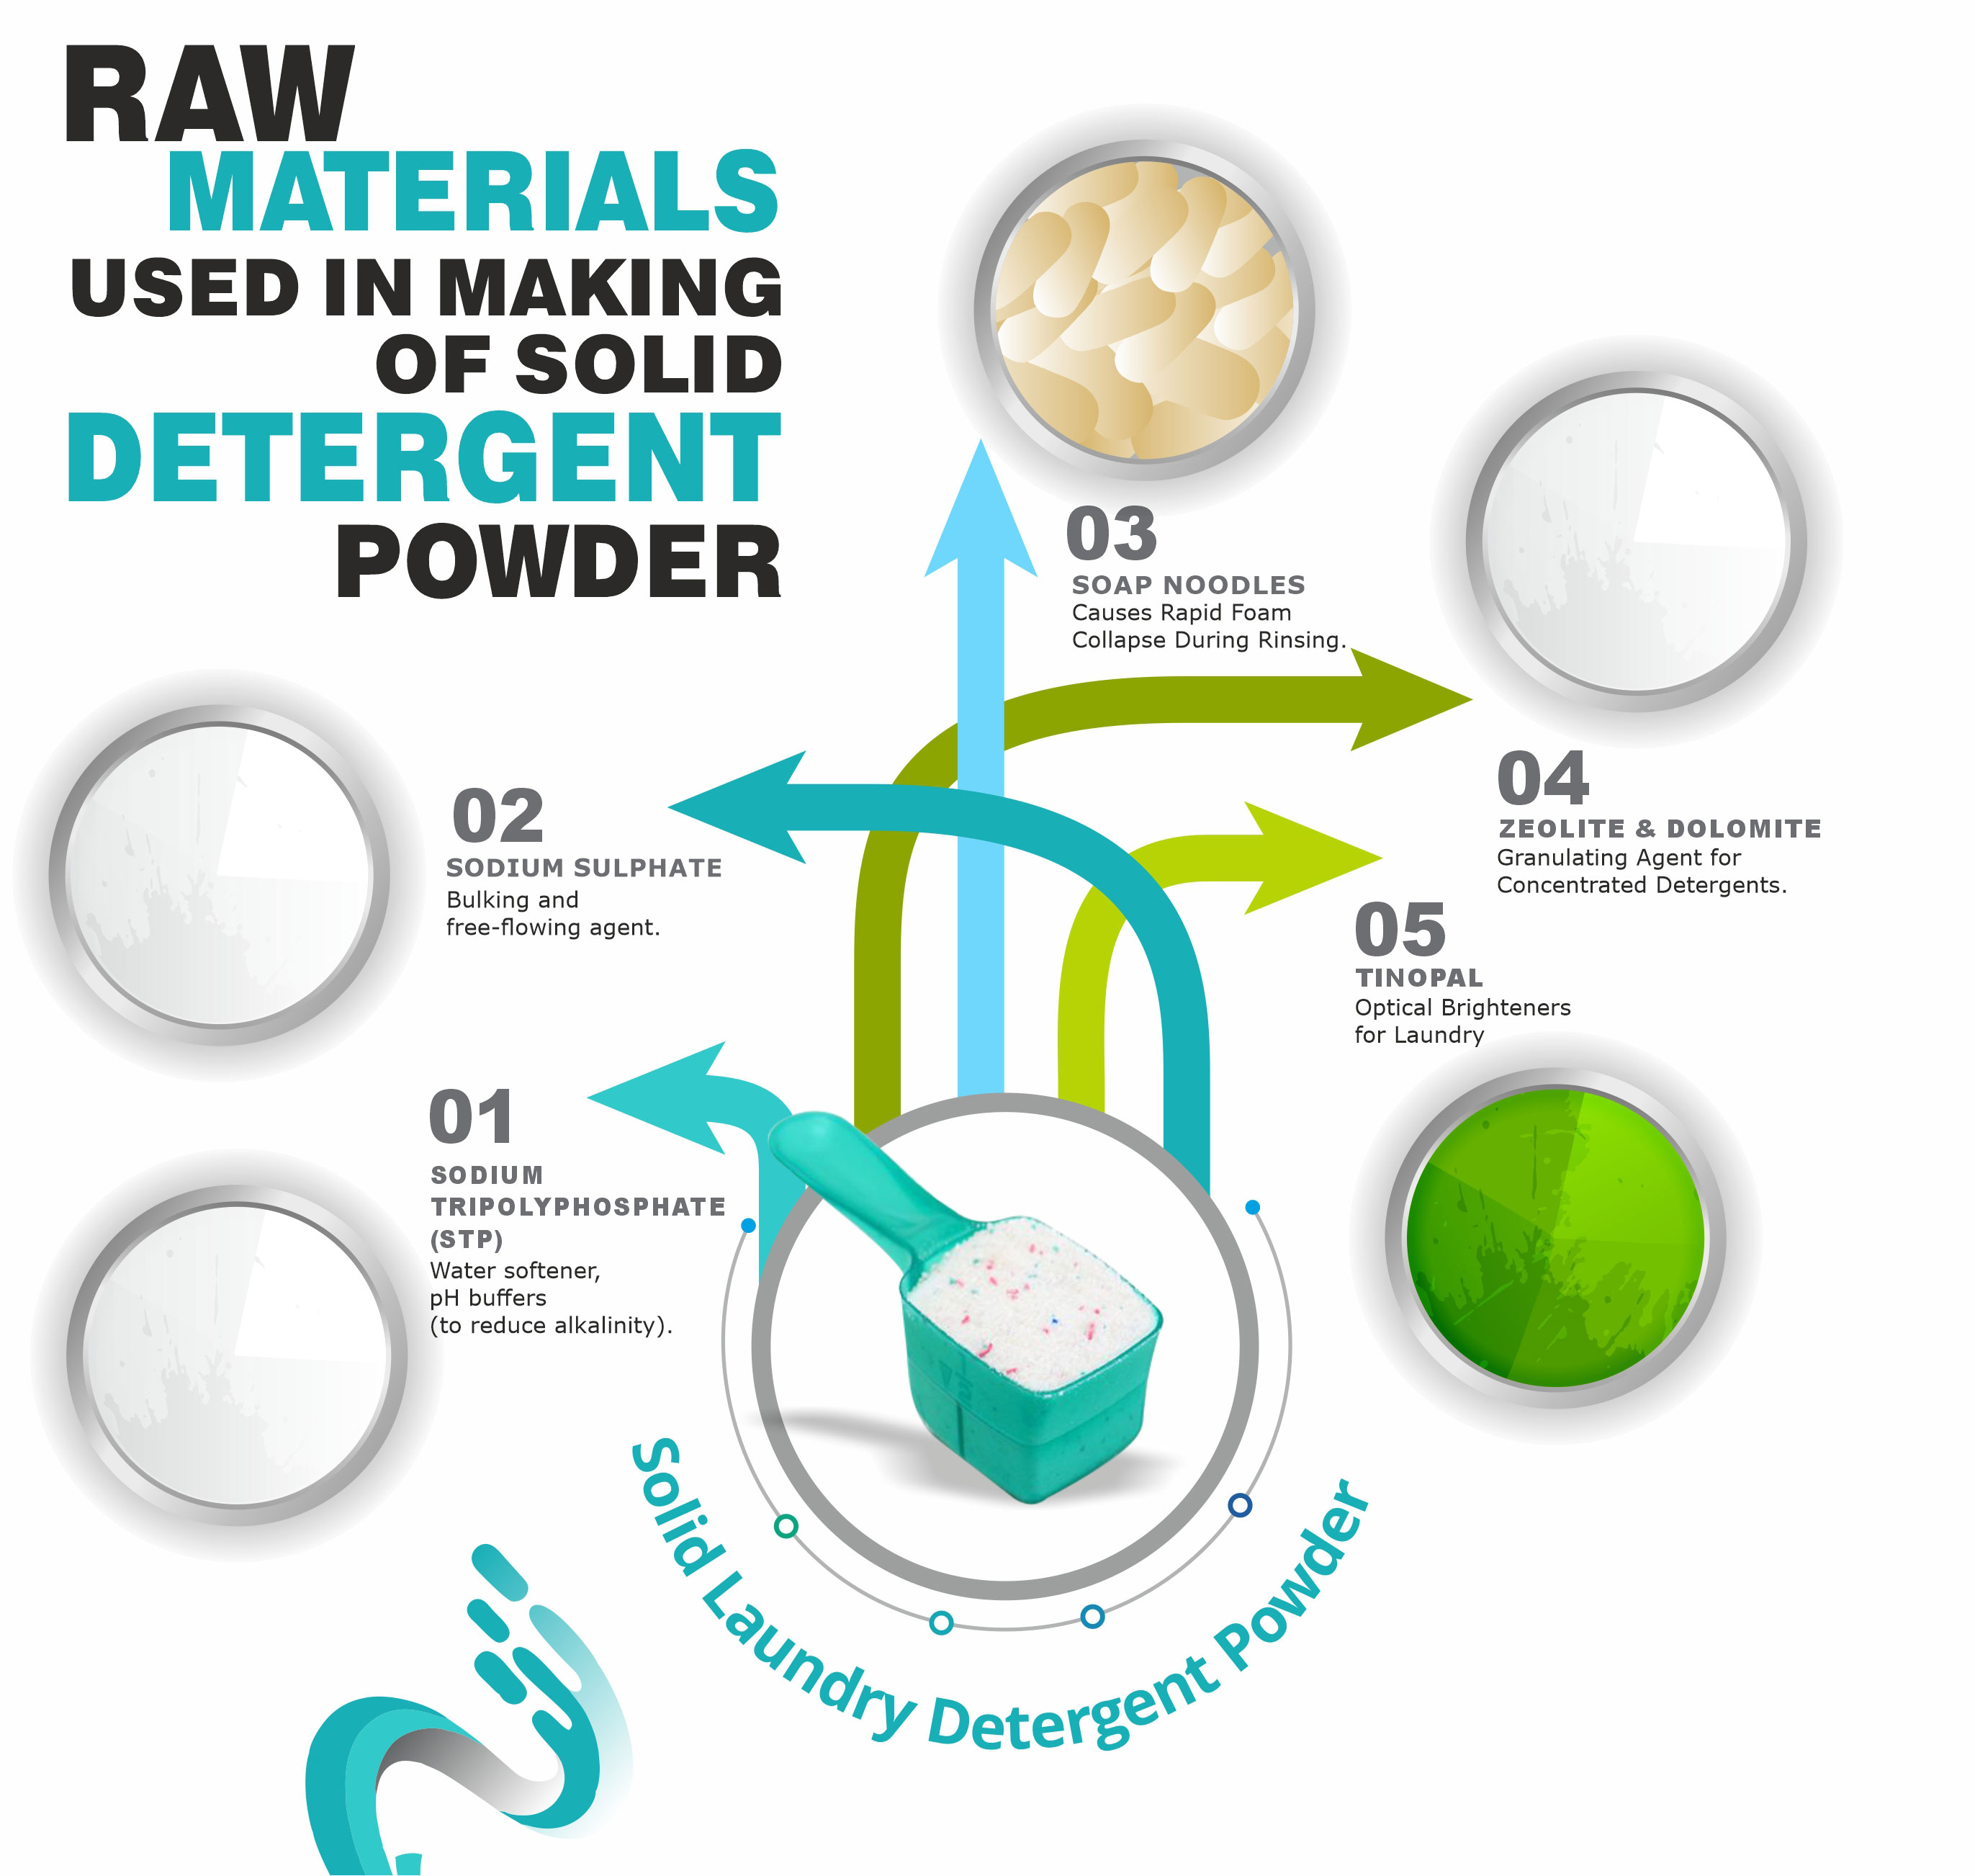 Raw material used in detergent powder